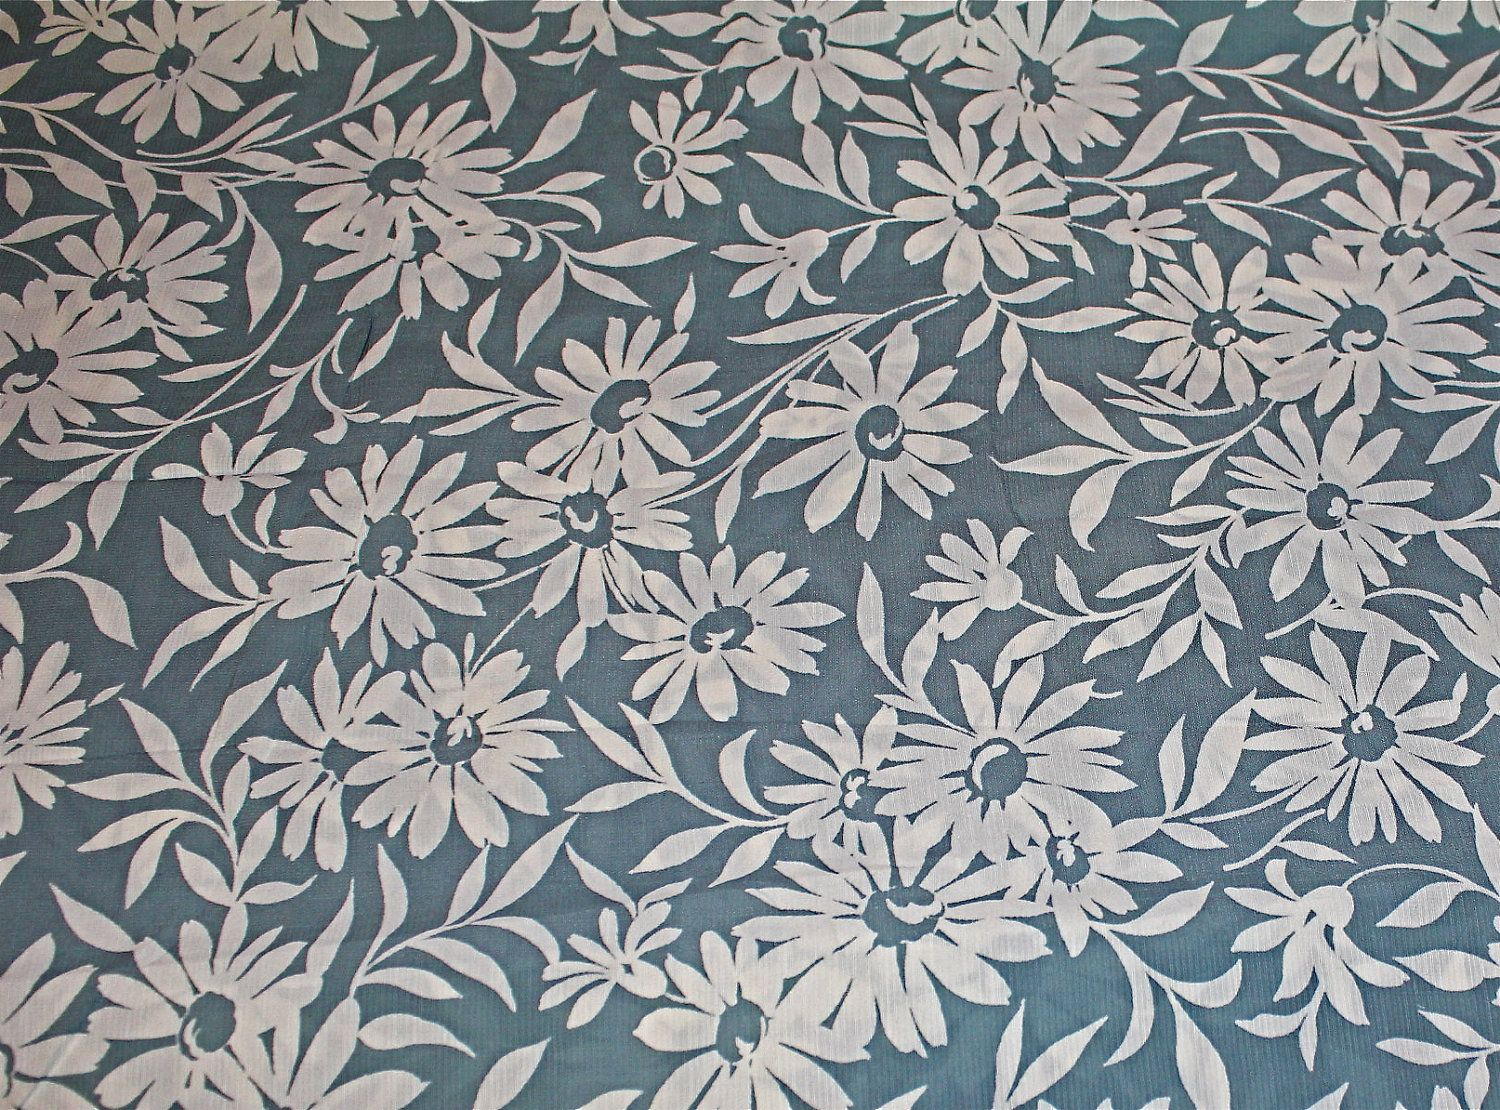 Floral Print Fabrics From The Uk Vintage 1940 S Rayon